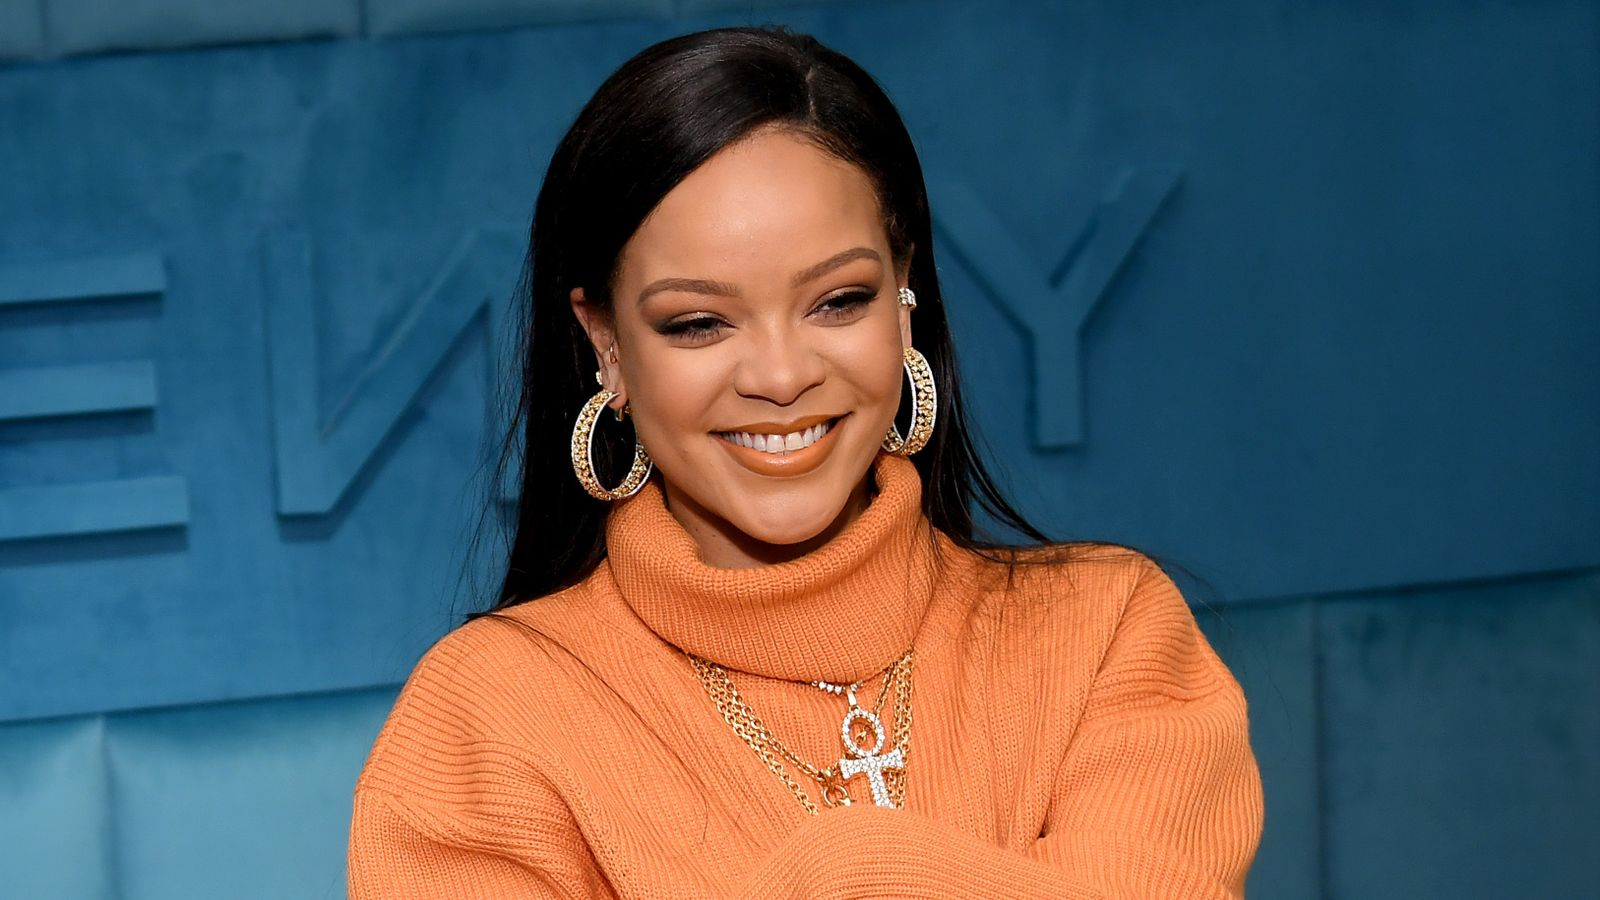 Rihanna injured in electric scooter accident thumbnail